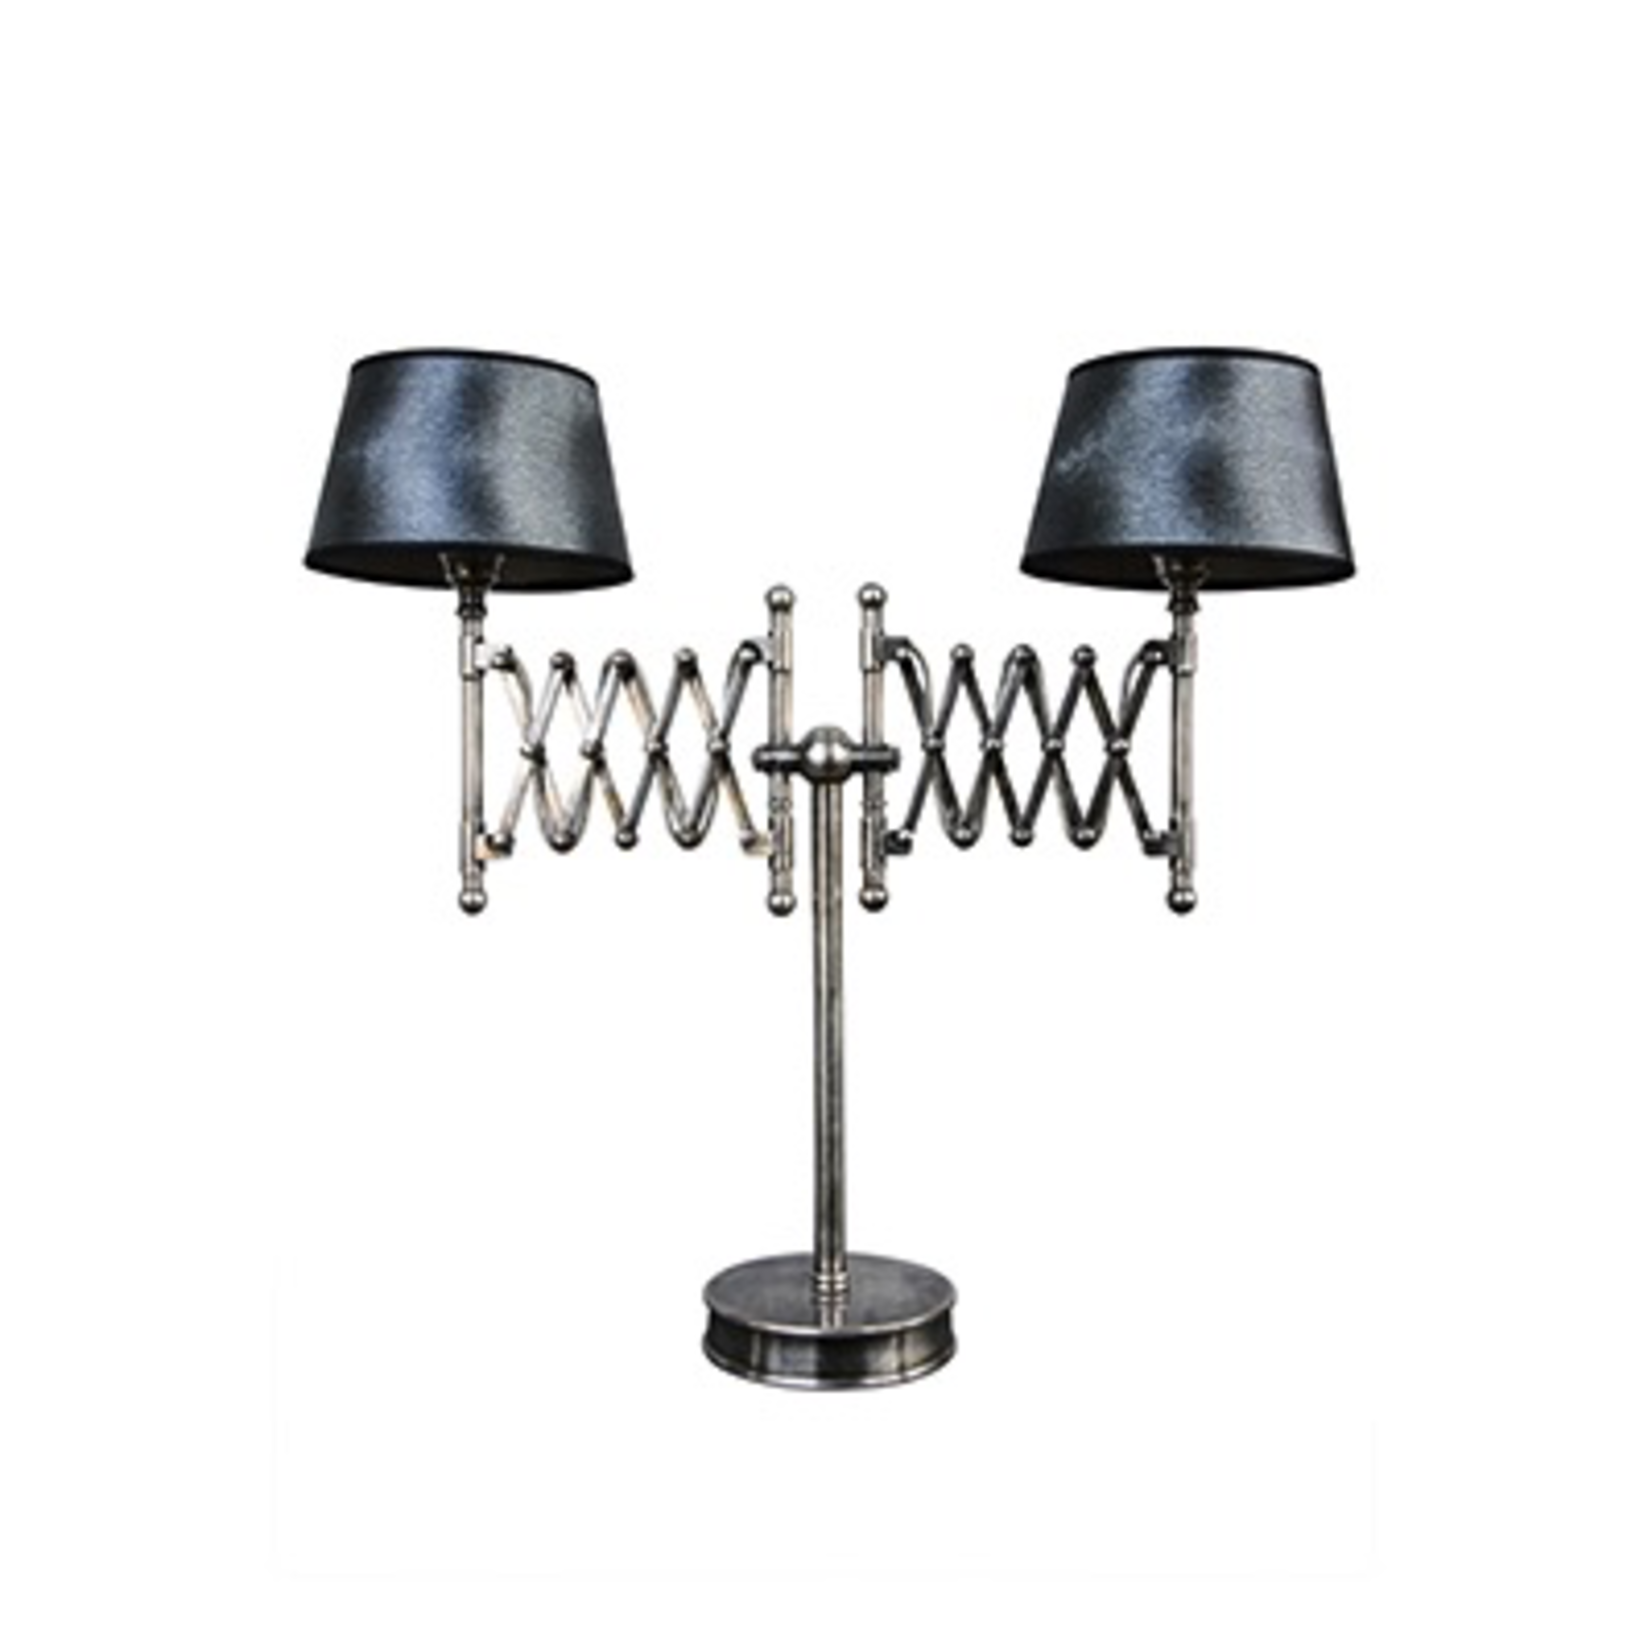 CHEHOMA TABLE LAMP NICKEL FINISH